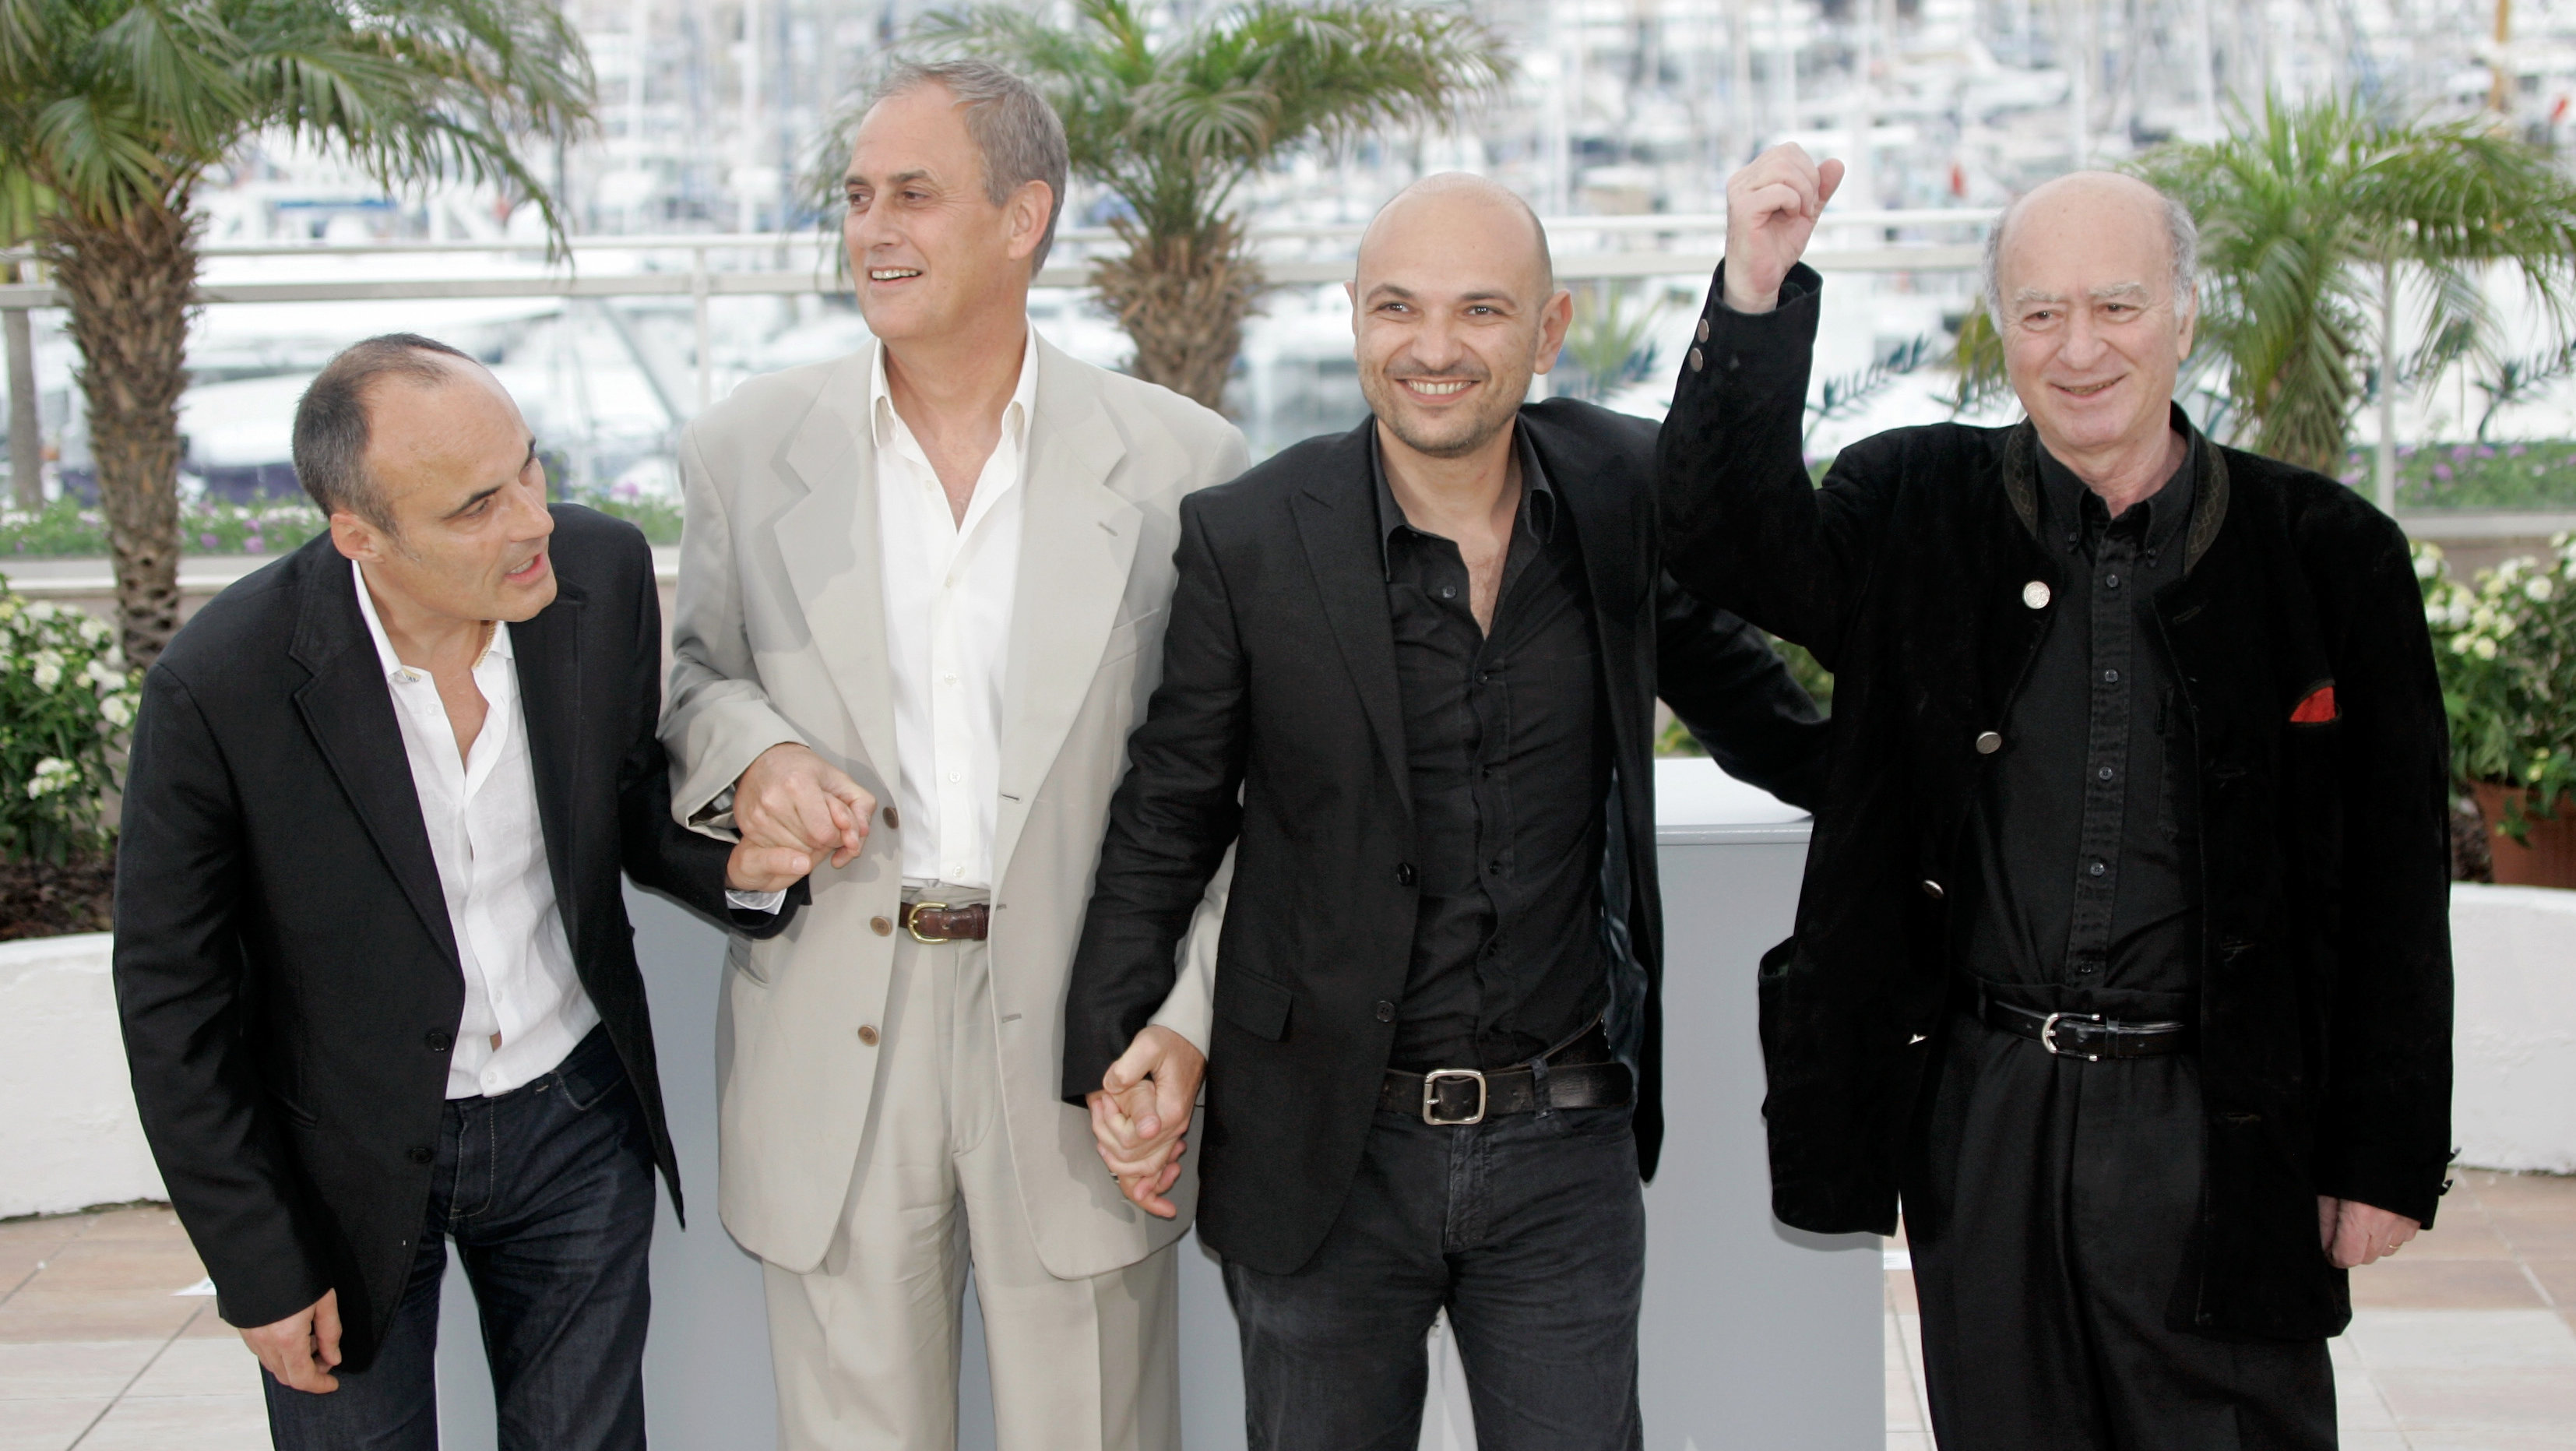 """From left, chief editor of French satyrical newspaper """"Charlie Hebdo"""", Philippe Val, French director Daniel Leconte, Charlie Hebdo's lawyer, Richard Malka and French cartoonist Georges Wolinski pose at the photo call for the documentary film """"C'est Dur d'Etre Aime Par Des Cons,"""" during the 61st International film festival in Cannes, southern France, on Friday, May 16, 2008. ("""